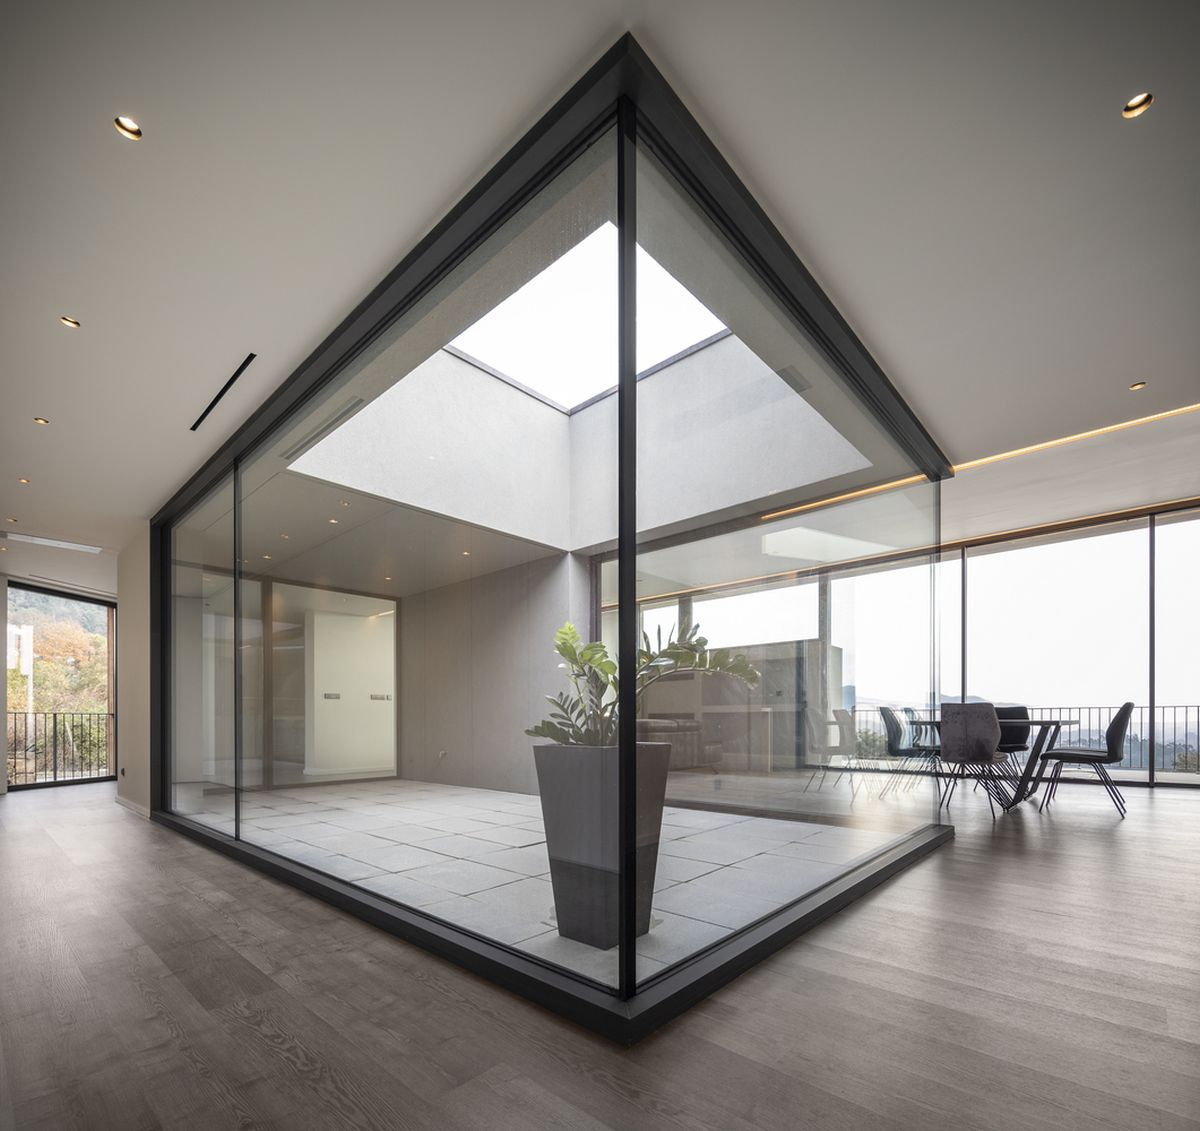 A series of skylights introduce natural sunlight into the main areas of the house